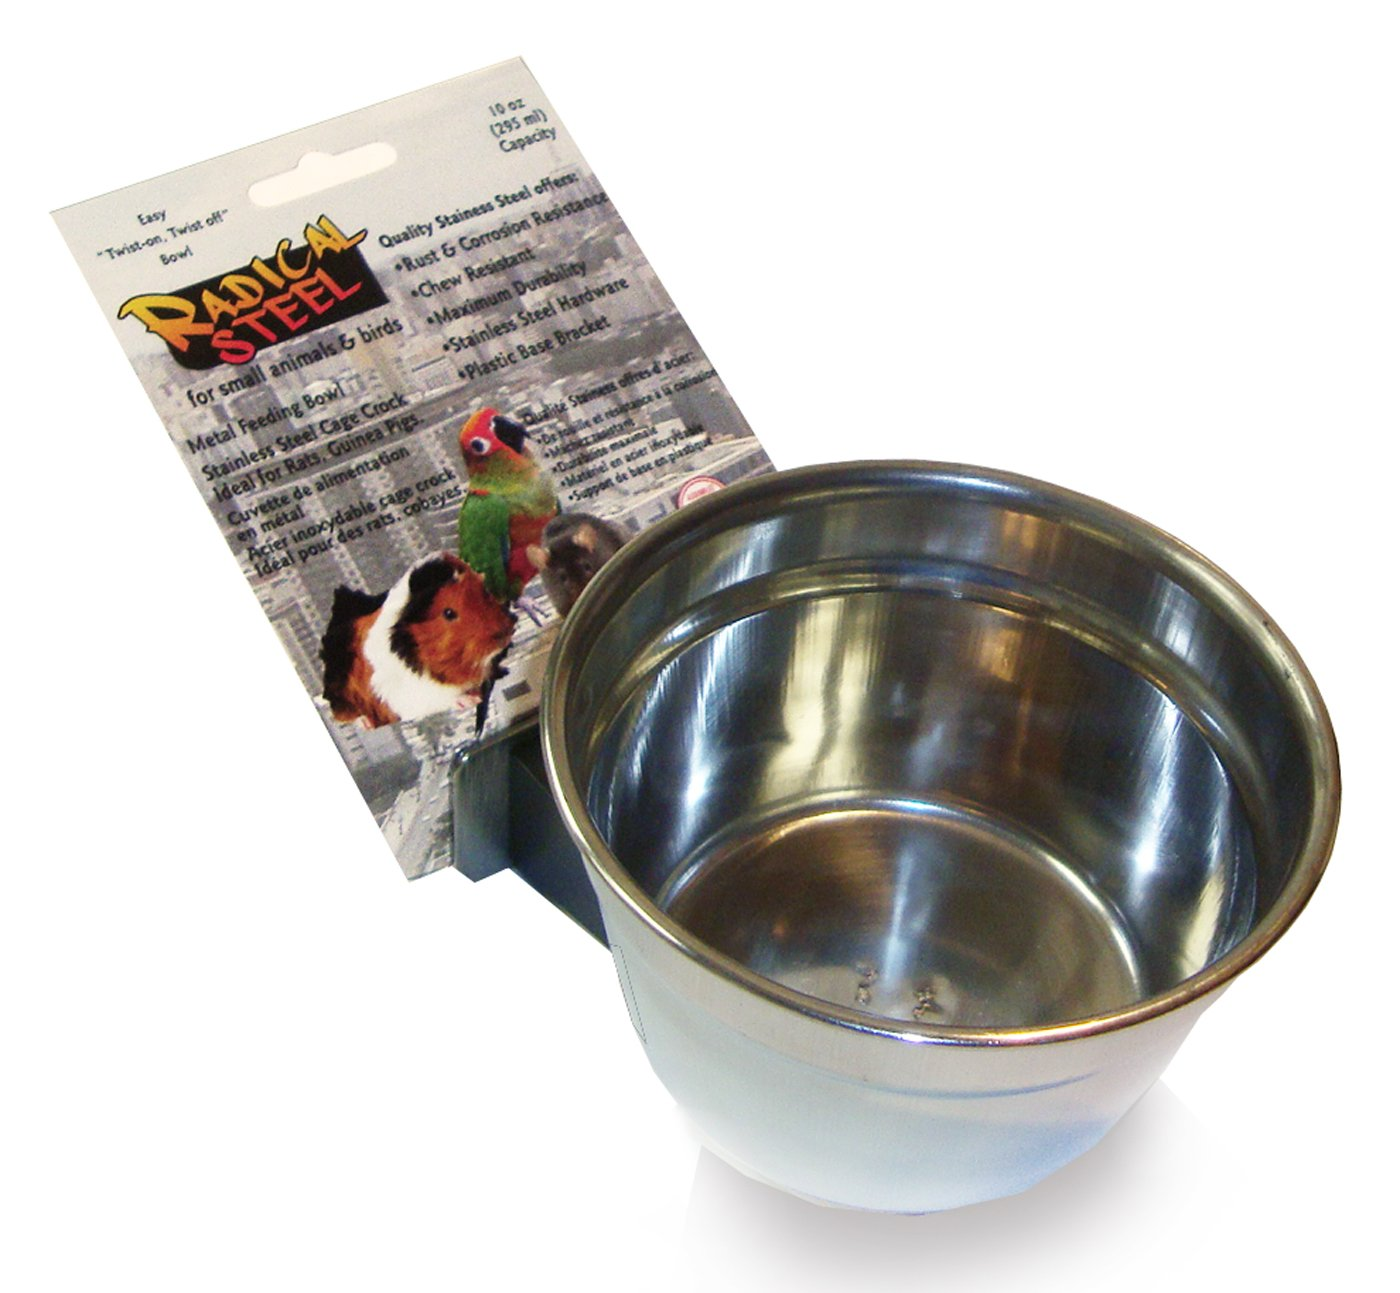 Lixit Animal Care Lixit Radical Steel Stainless Steel Crock, 10-Ounce by Lixit Animal Care (Image #1)